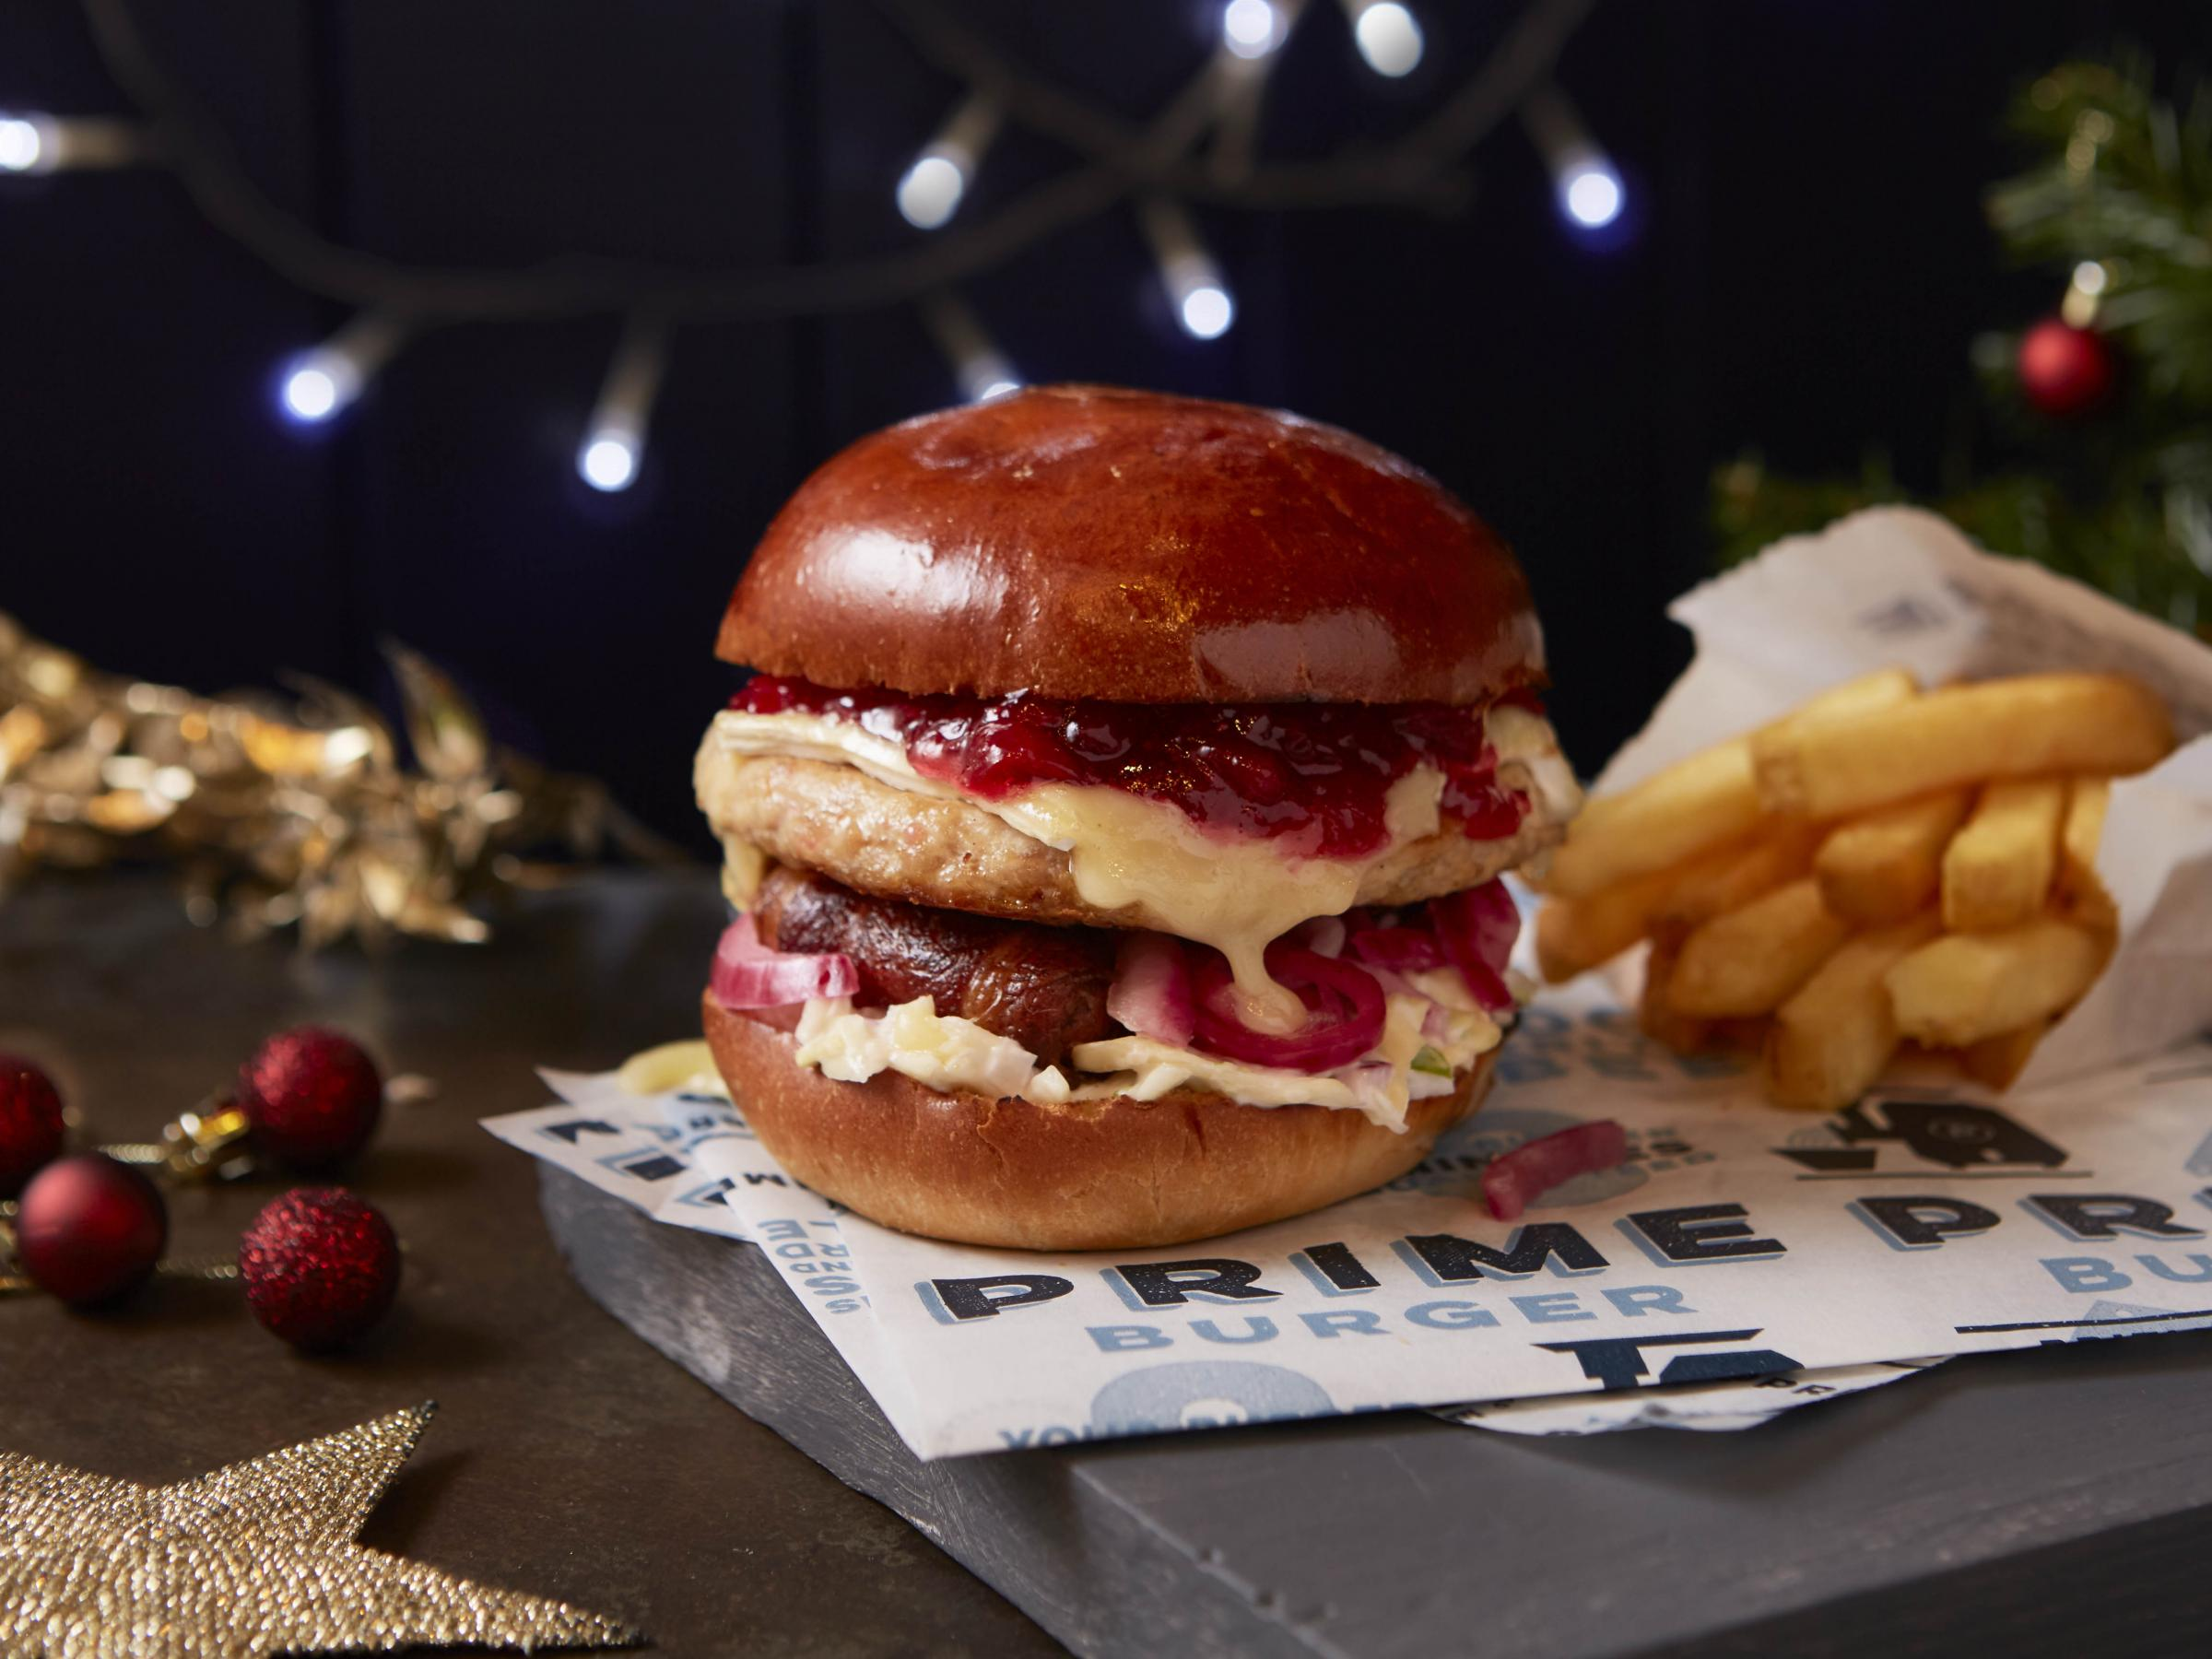 CALLING ALL FESTIVE FOOD FANATICS… YOU CAN NOW GET A FULL CHRISTMAS DINNER IN A BUN!